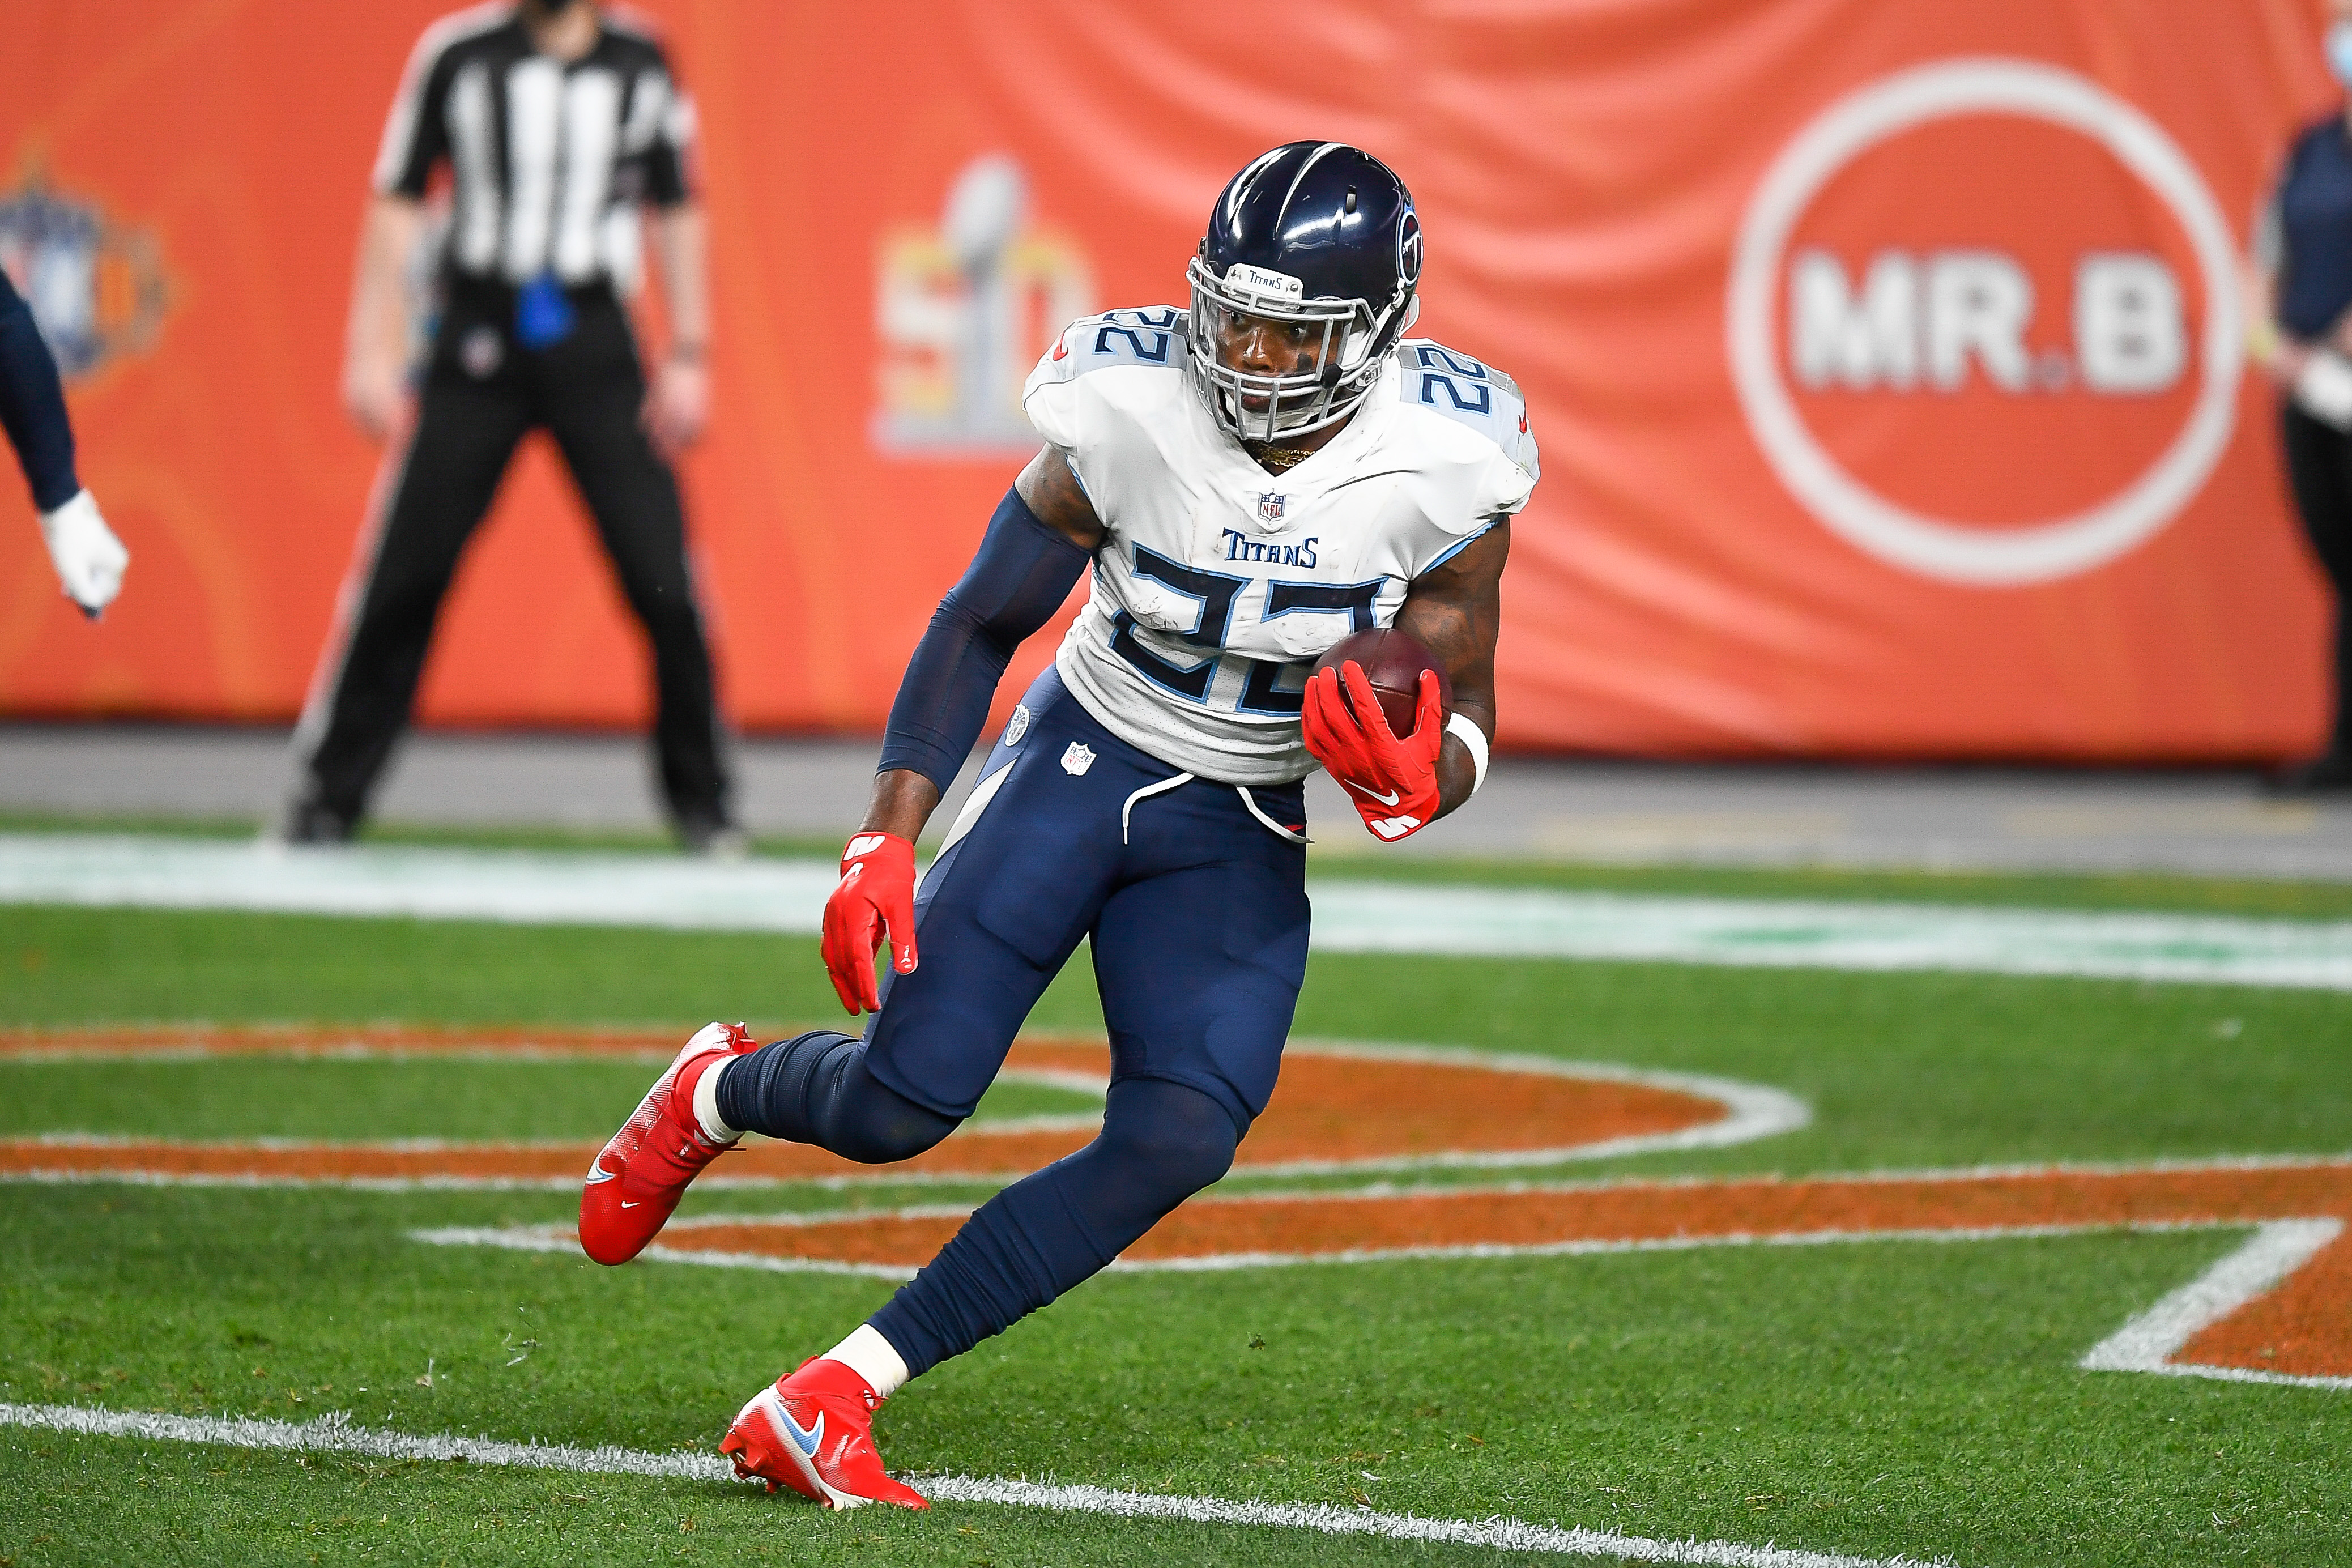 Derrick Henry of the Tennessee Titans carries the ball against the Denver Broncos at Empower Field at Mile High on September 14, 2020 in Denver, Colorado.